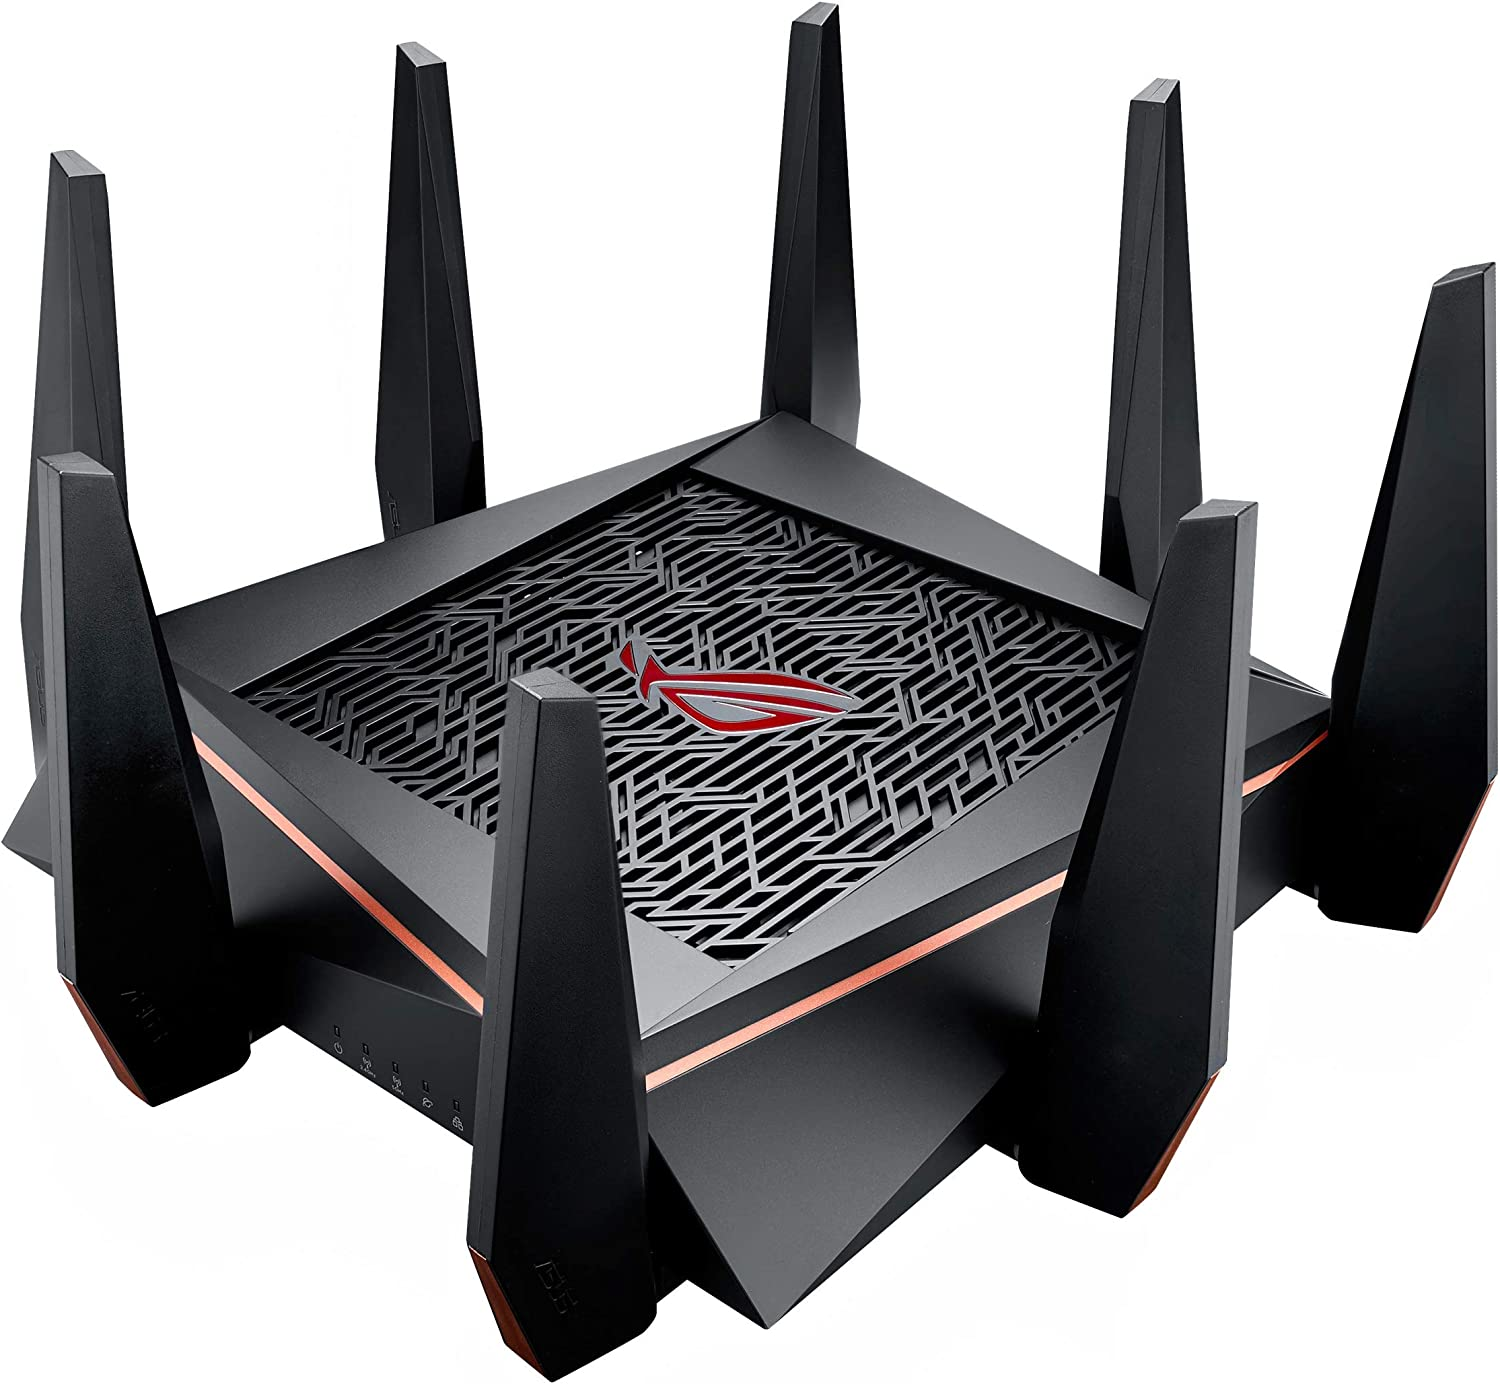 Best Asus Router Of 2021 – Our 7 Picks! 7